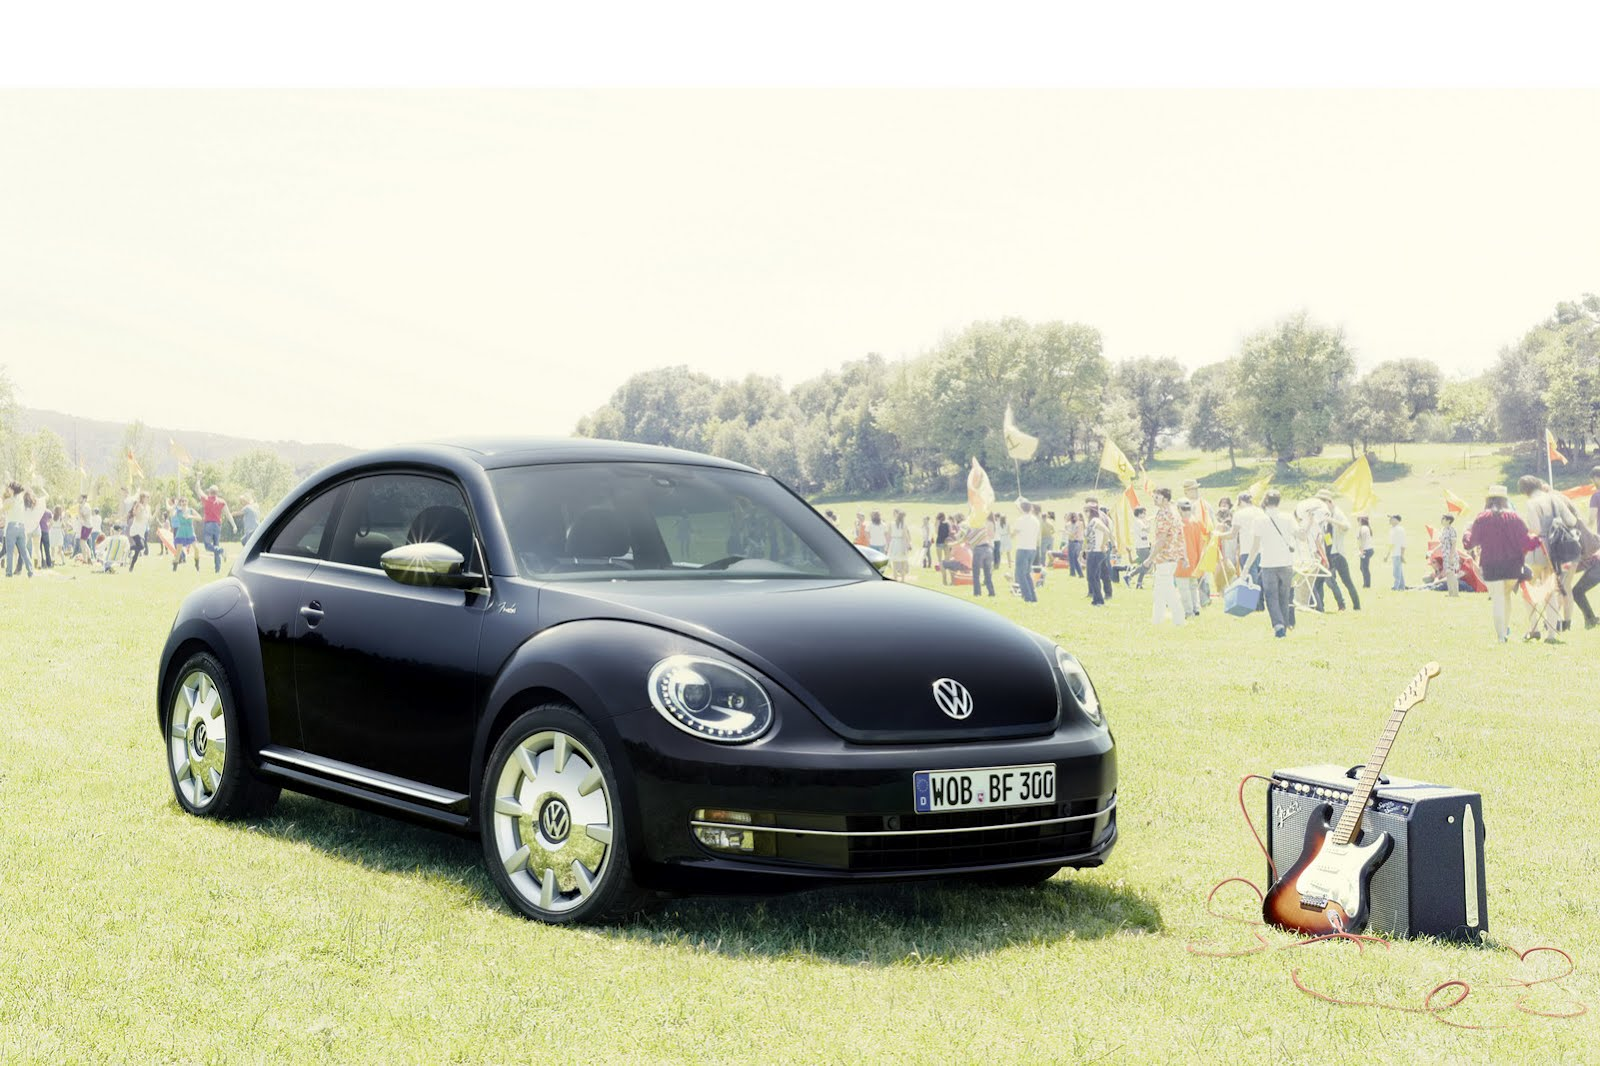 The Volkswagen Beetle Fender Edition